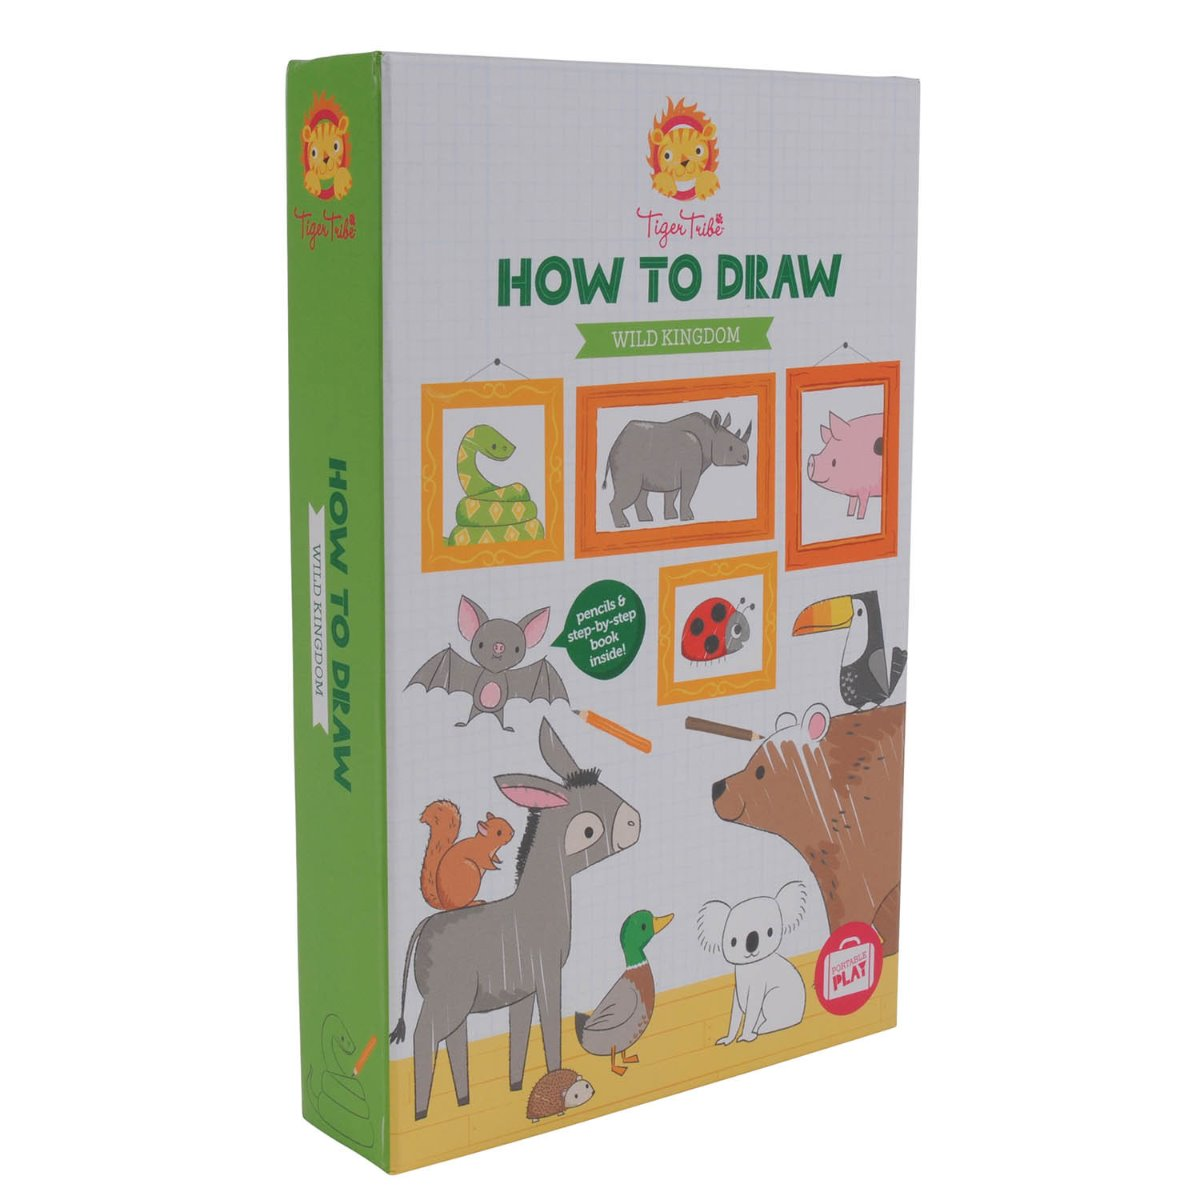 Tiger Tribe - How To Draw Wild Kingdom